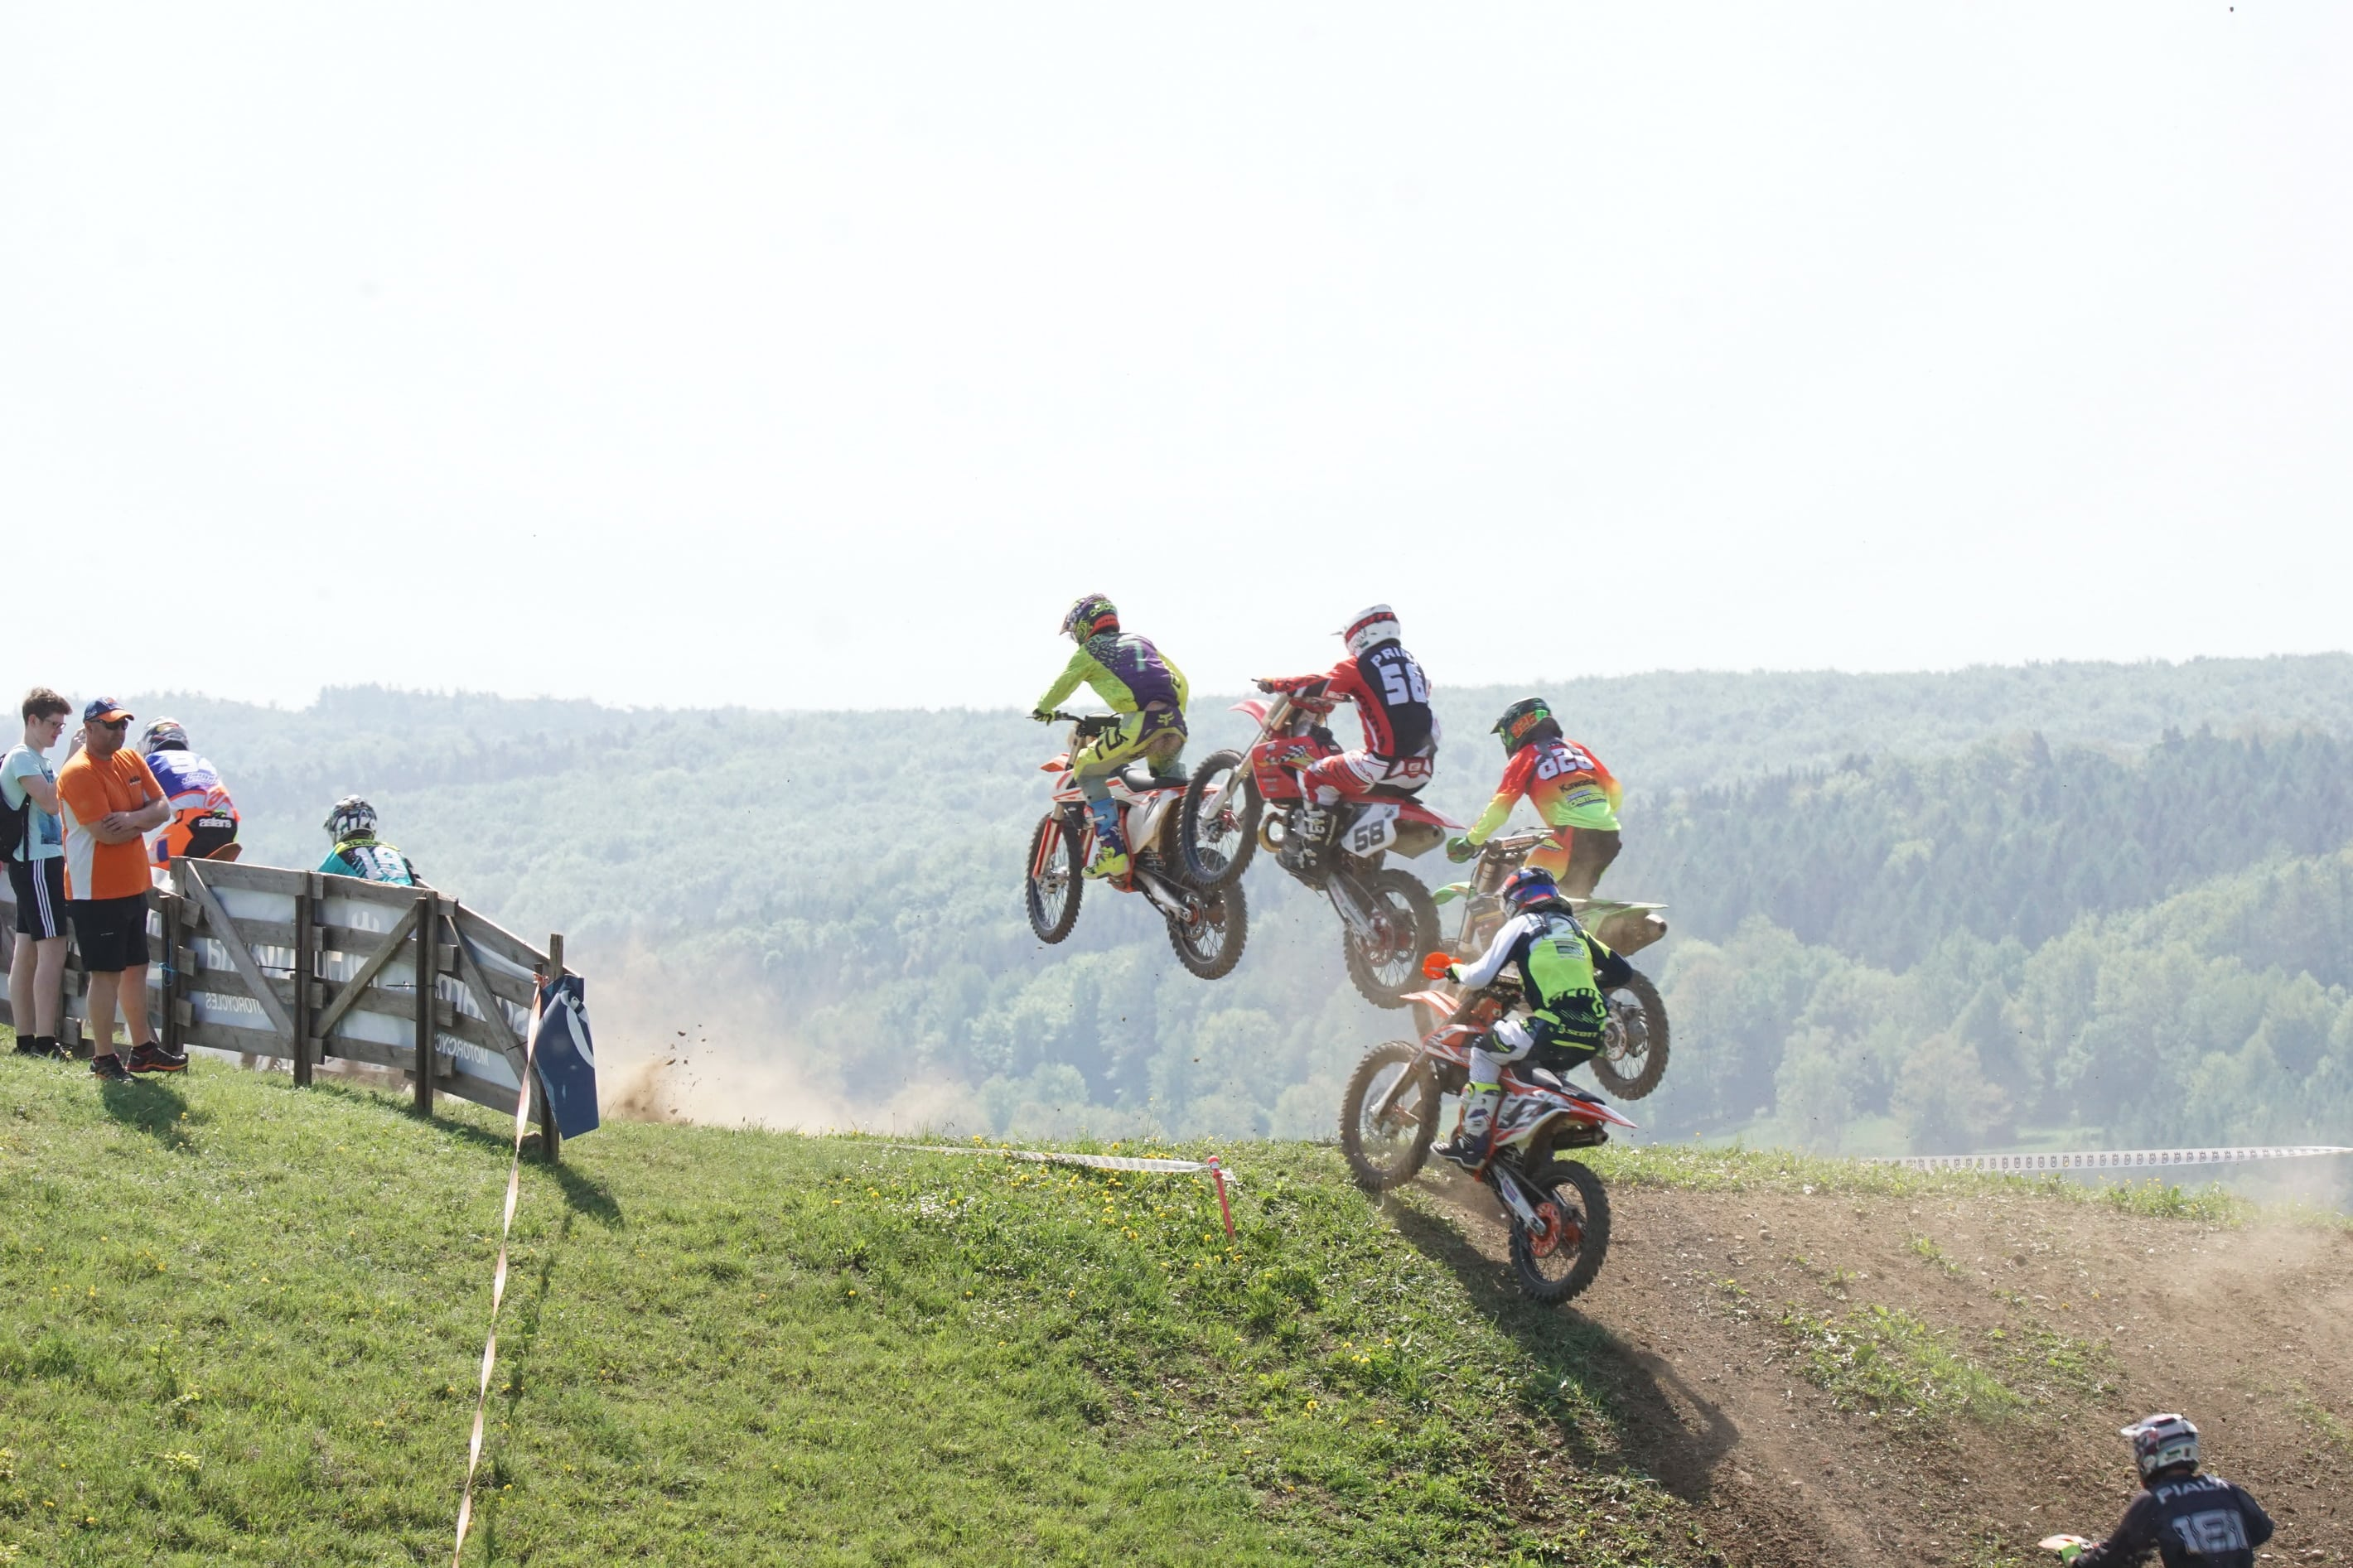 DSC 053_Moto Cross Sittendorf Teil1 am 29.04.2018